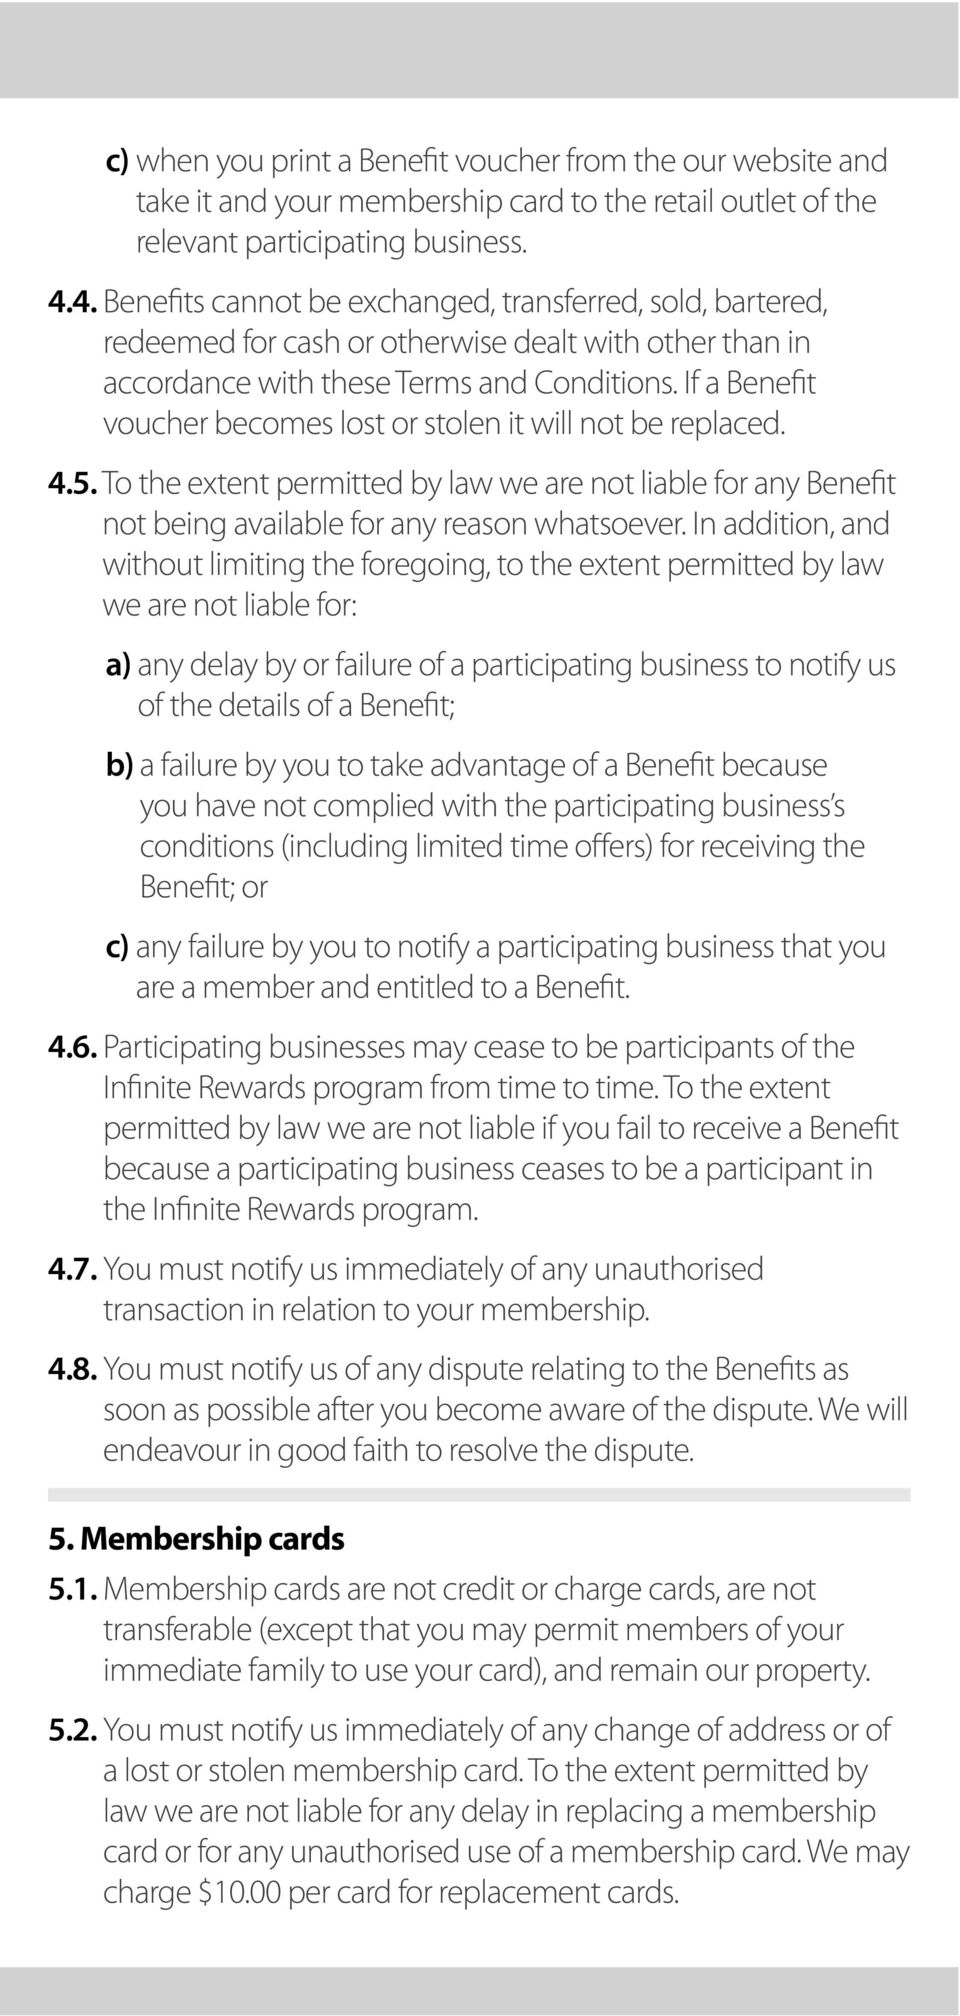 If a Benefit voucher becomes lost or stolen it will not be replaced. 4.5. To the extent permitted by law we are not liable for any Benefit not being available for any reason whatsoever.